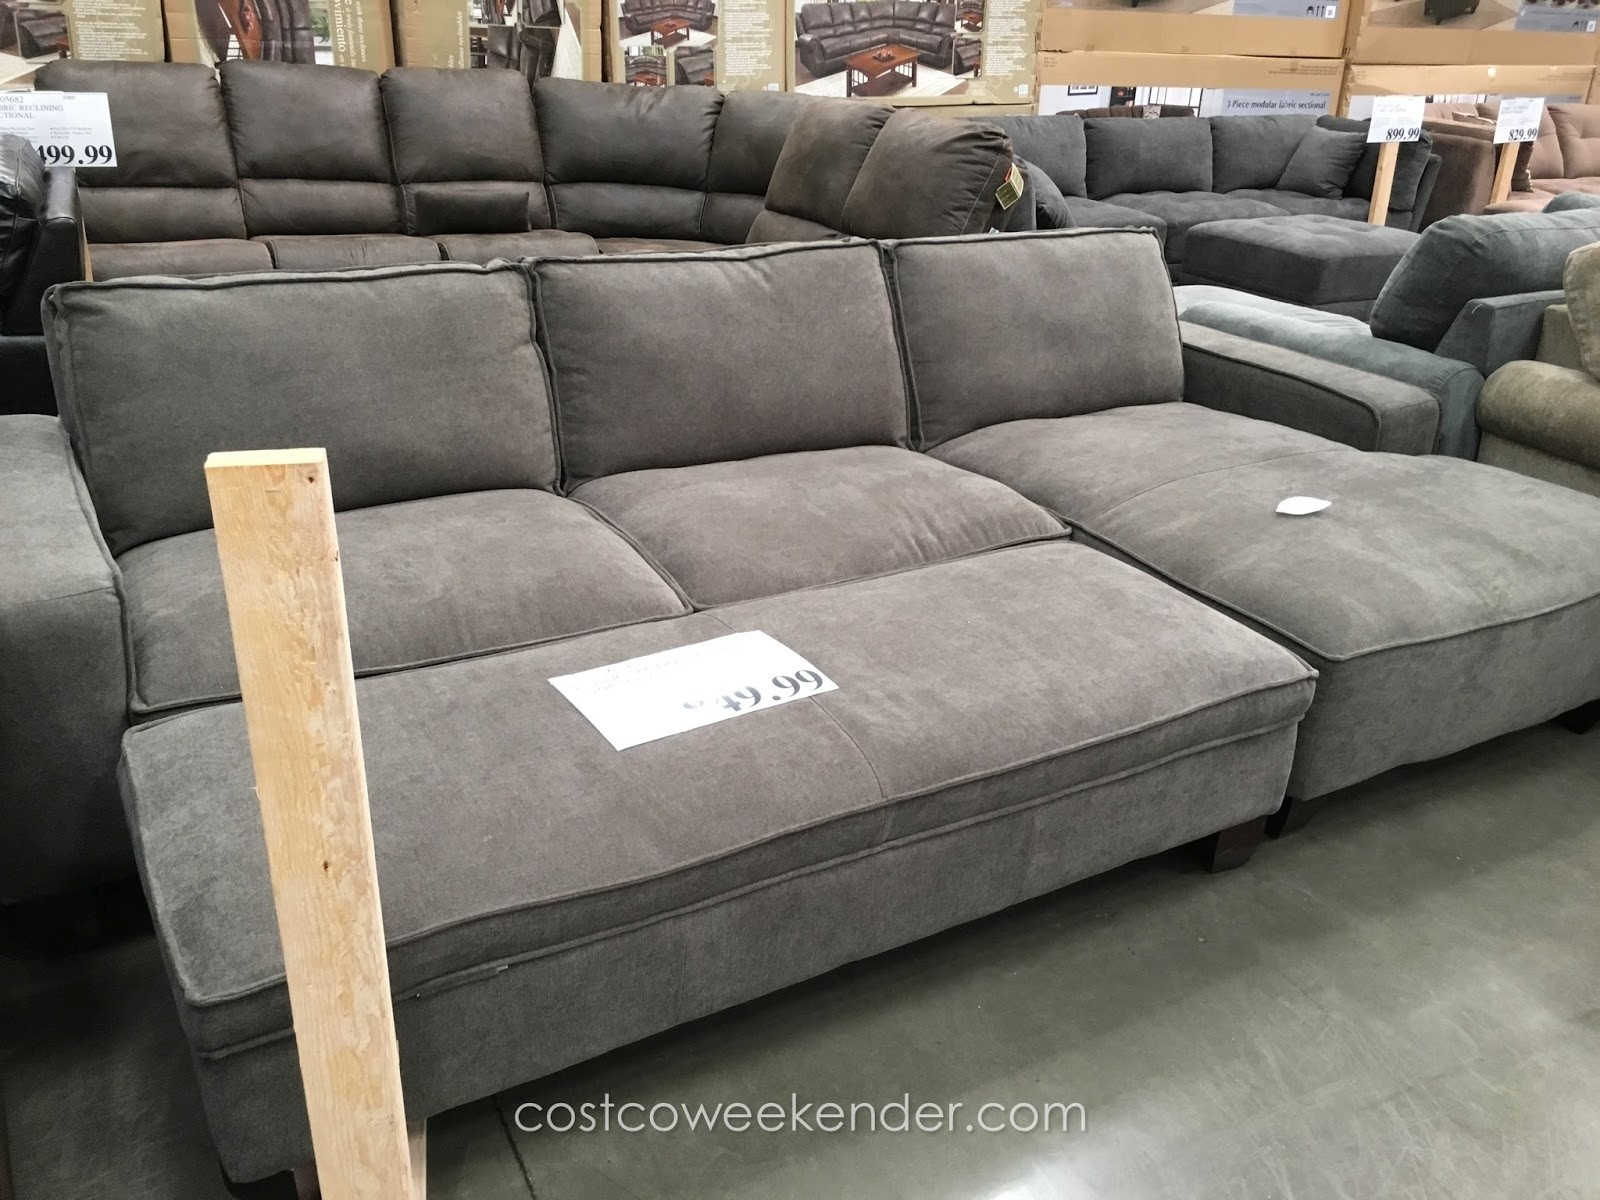 Costco sofa Bed Luxury Furniture Enchanting Costco Sectional Couch for Awesome Living Concept